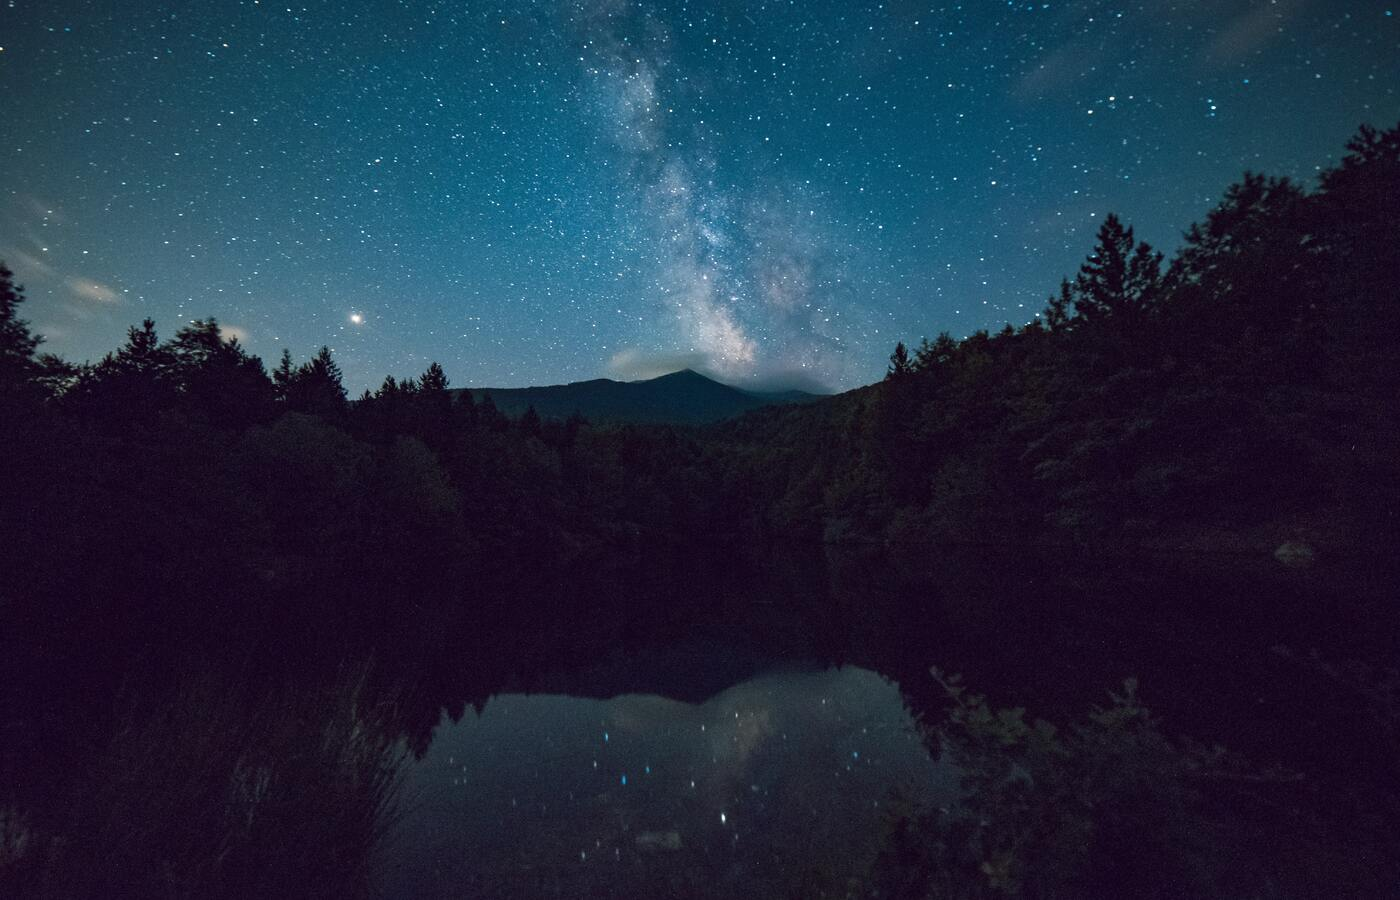 starry-night-sky-reflection-5k-e0.jpg